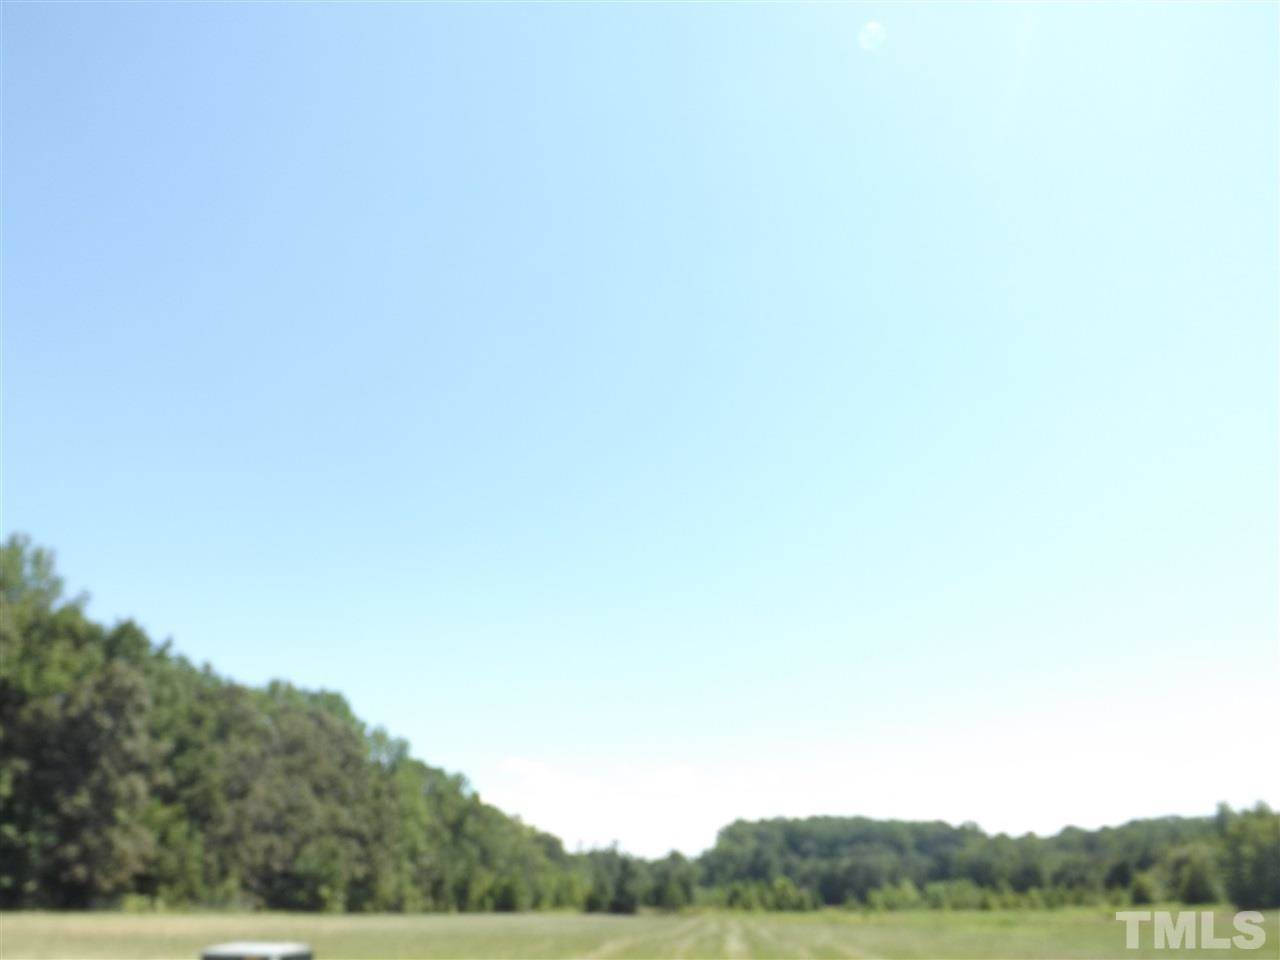 Image of Acreage for Sale near Bear Creek, North Carolina, in Chatham county: 5.45 acres